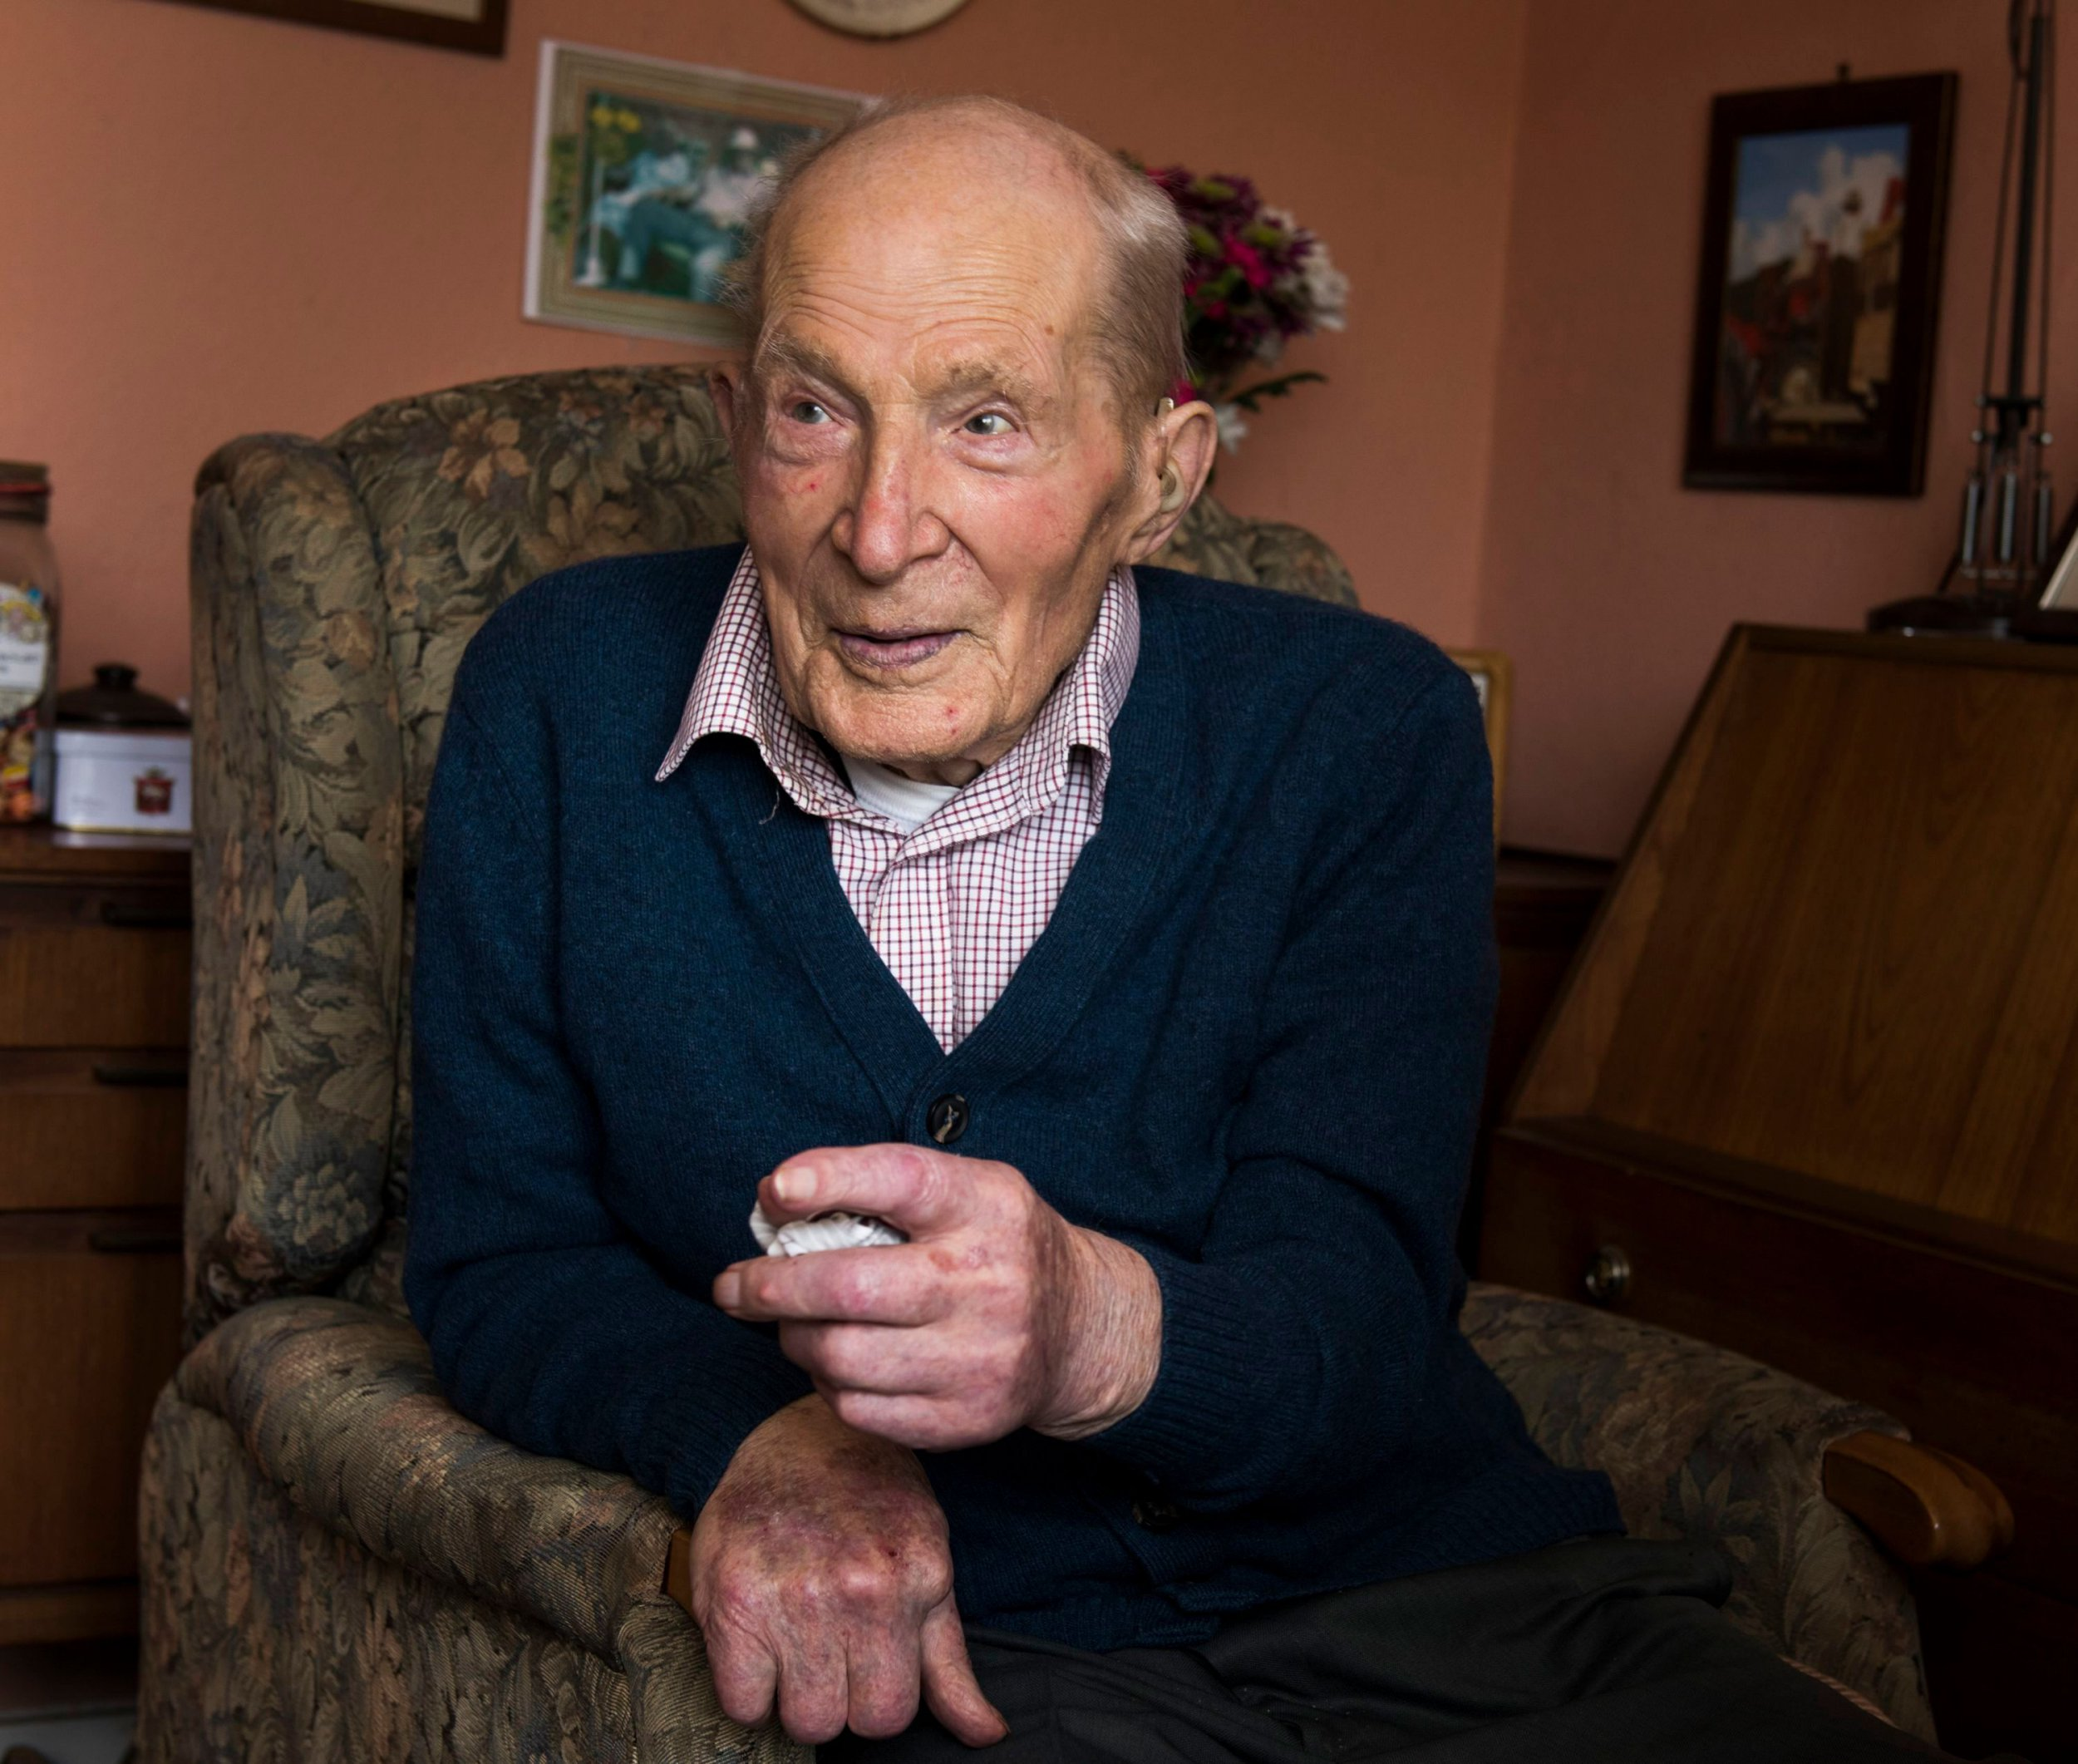 """Mandatory Credit: Photo by REX/Shutterstock (10181544c) Alf Smith Man celebrates his 109th birthday, Scotland - 10 May 2017 Alf Smith was born on 29 March 1908 in Invergowrie, in Perth and Kinross, and later farmed at Kinfauns where he raised two children. Asked for the secret of a long and happy life in a previous interview he said: """"Porridge is helpful and having a job you enjoy."""""""